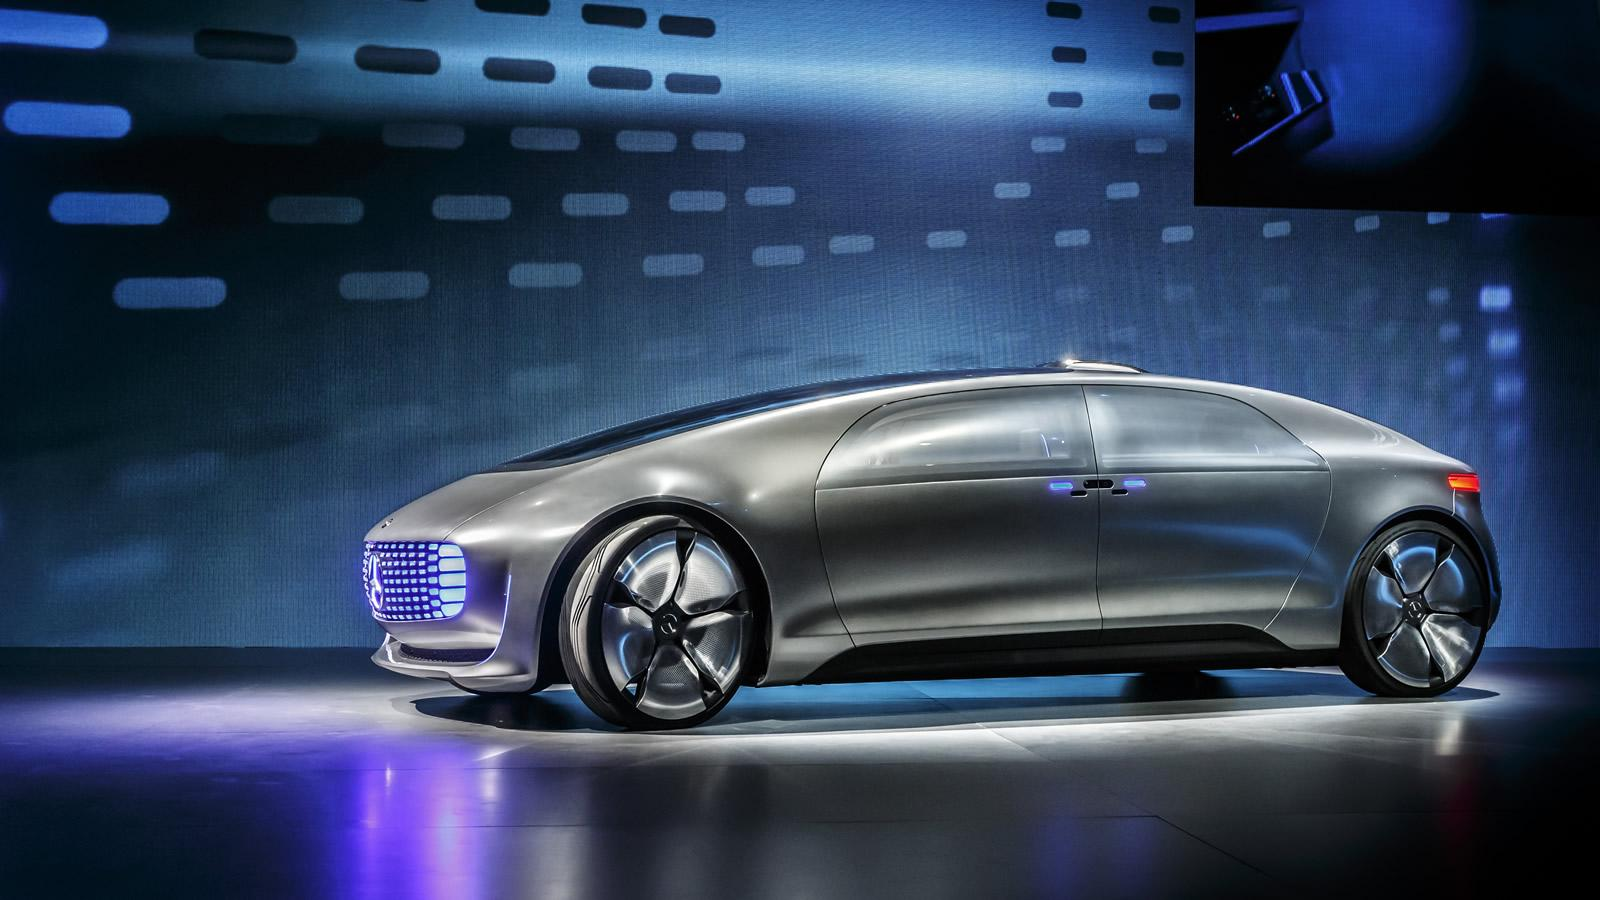 Mercedes-Benz_F015_Luxury_in_motion_2015_1